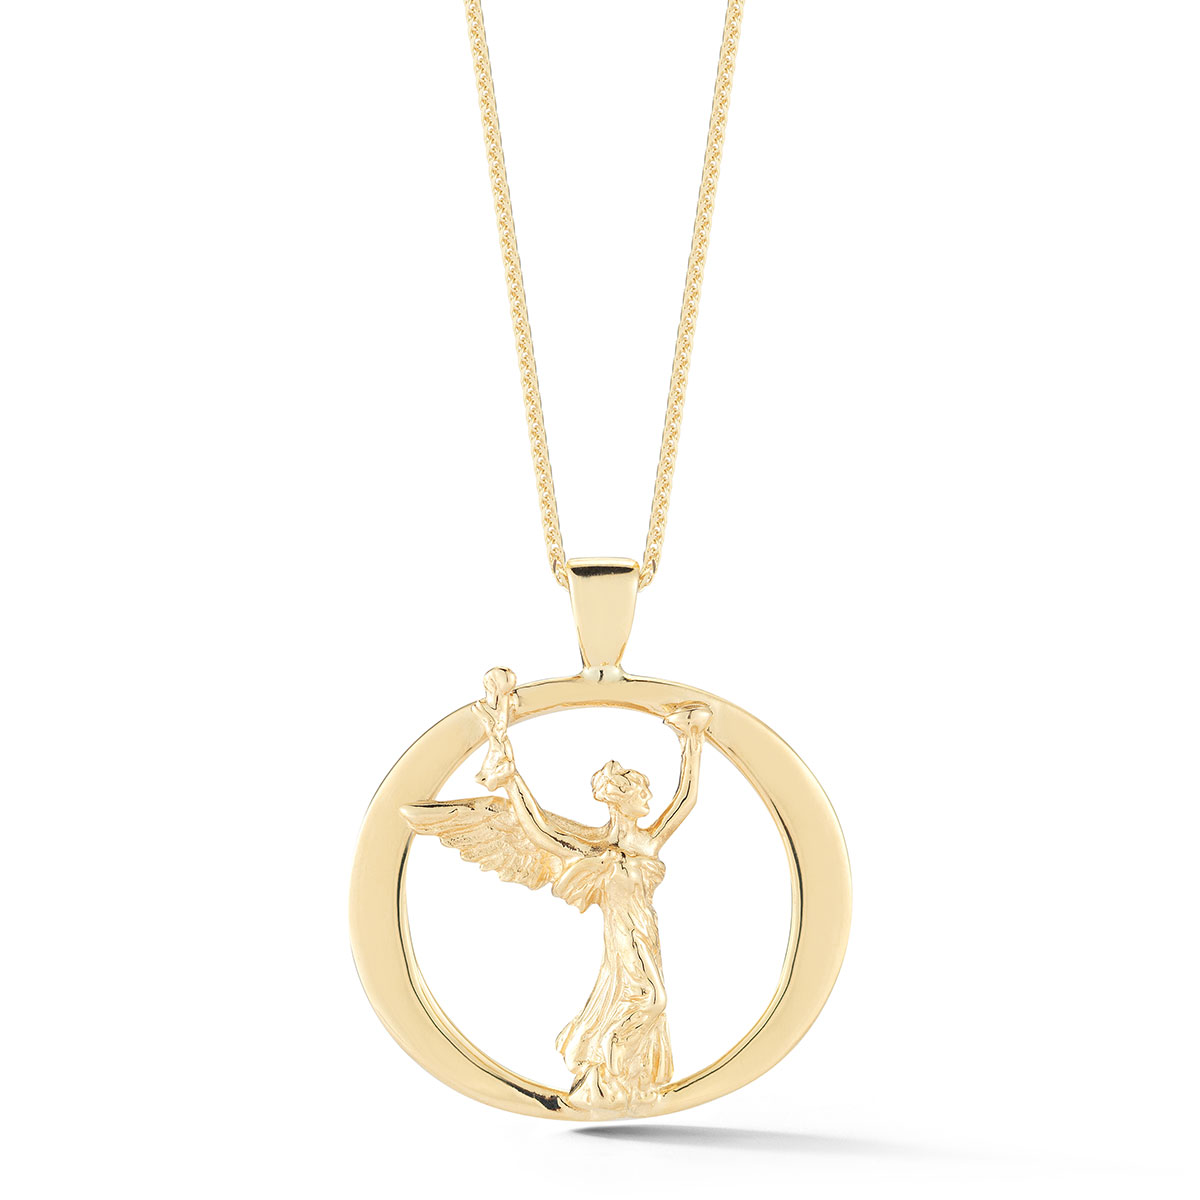 s sale id at happy chopard diamond women l jewelry gold pendant j spirit for chain necklaces